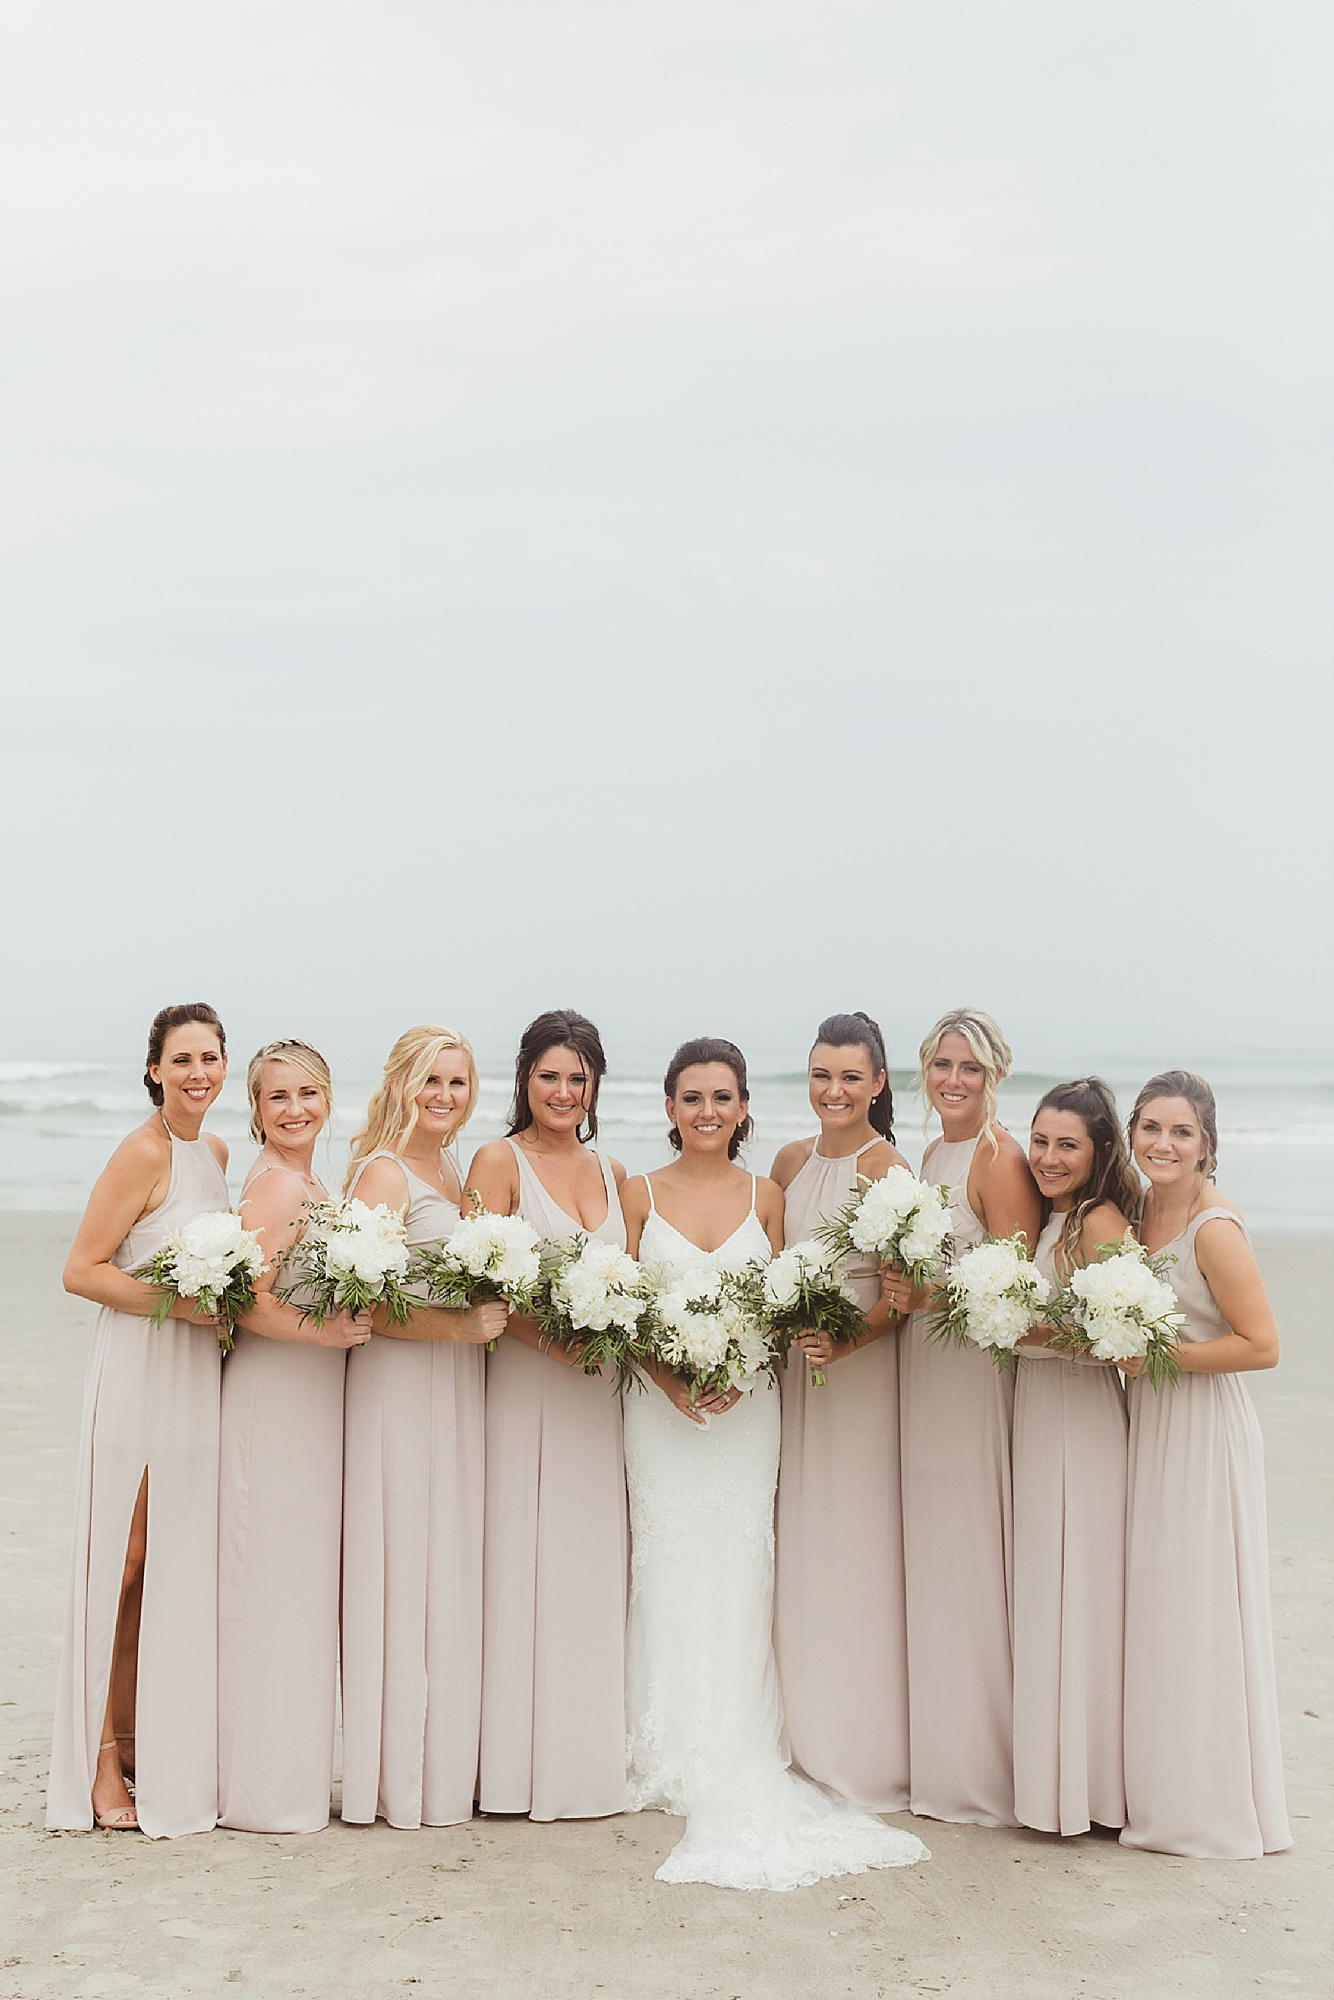 Candid and Stylish South Jersey Wedding Photography by Magdalena Studios 0033